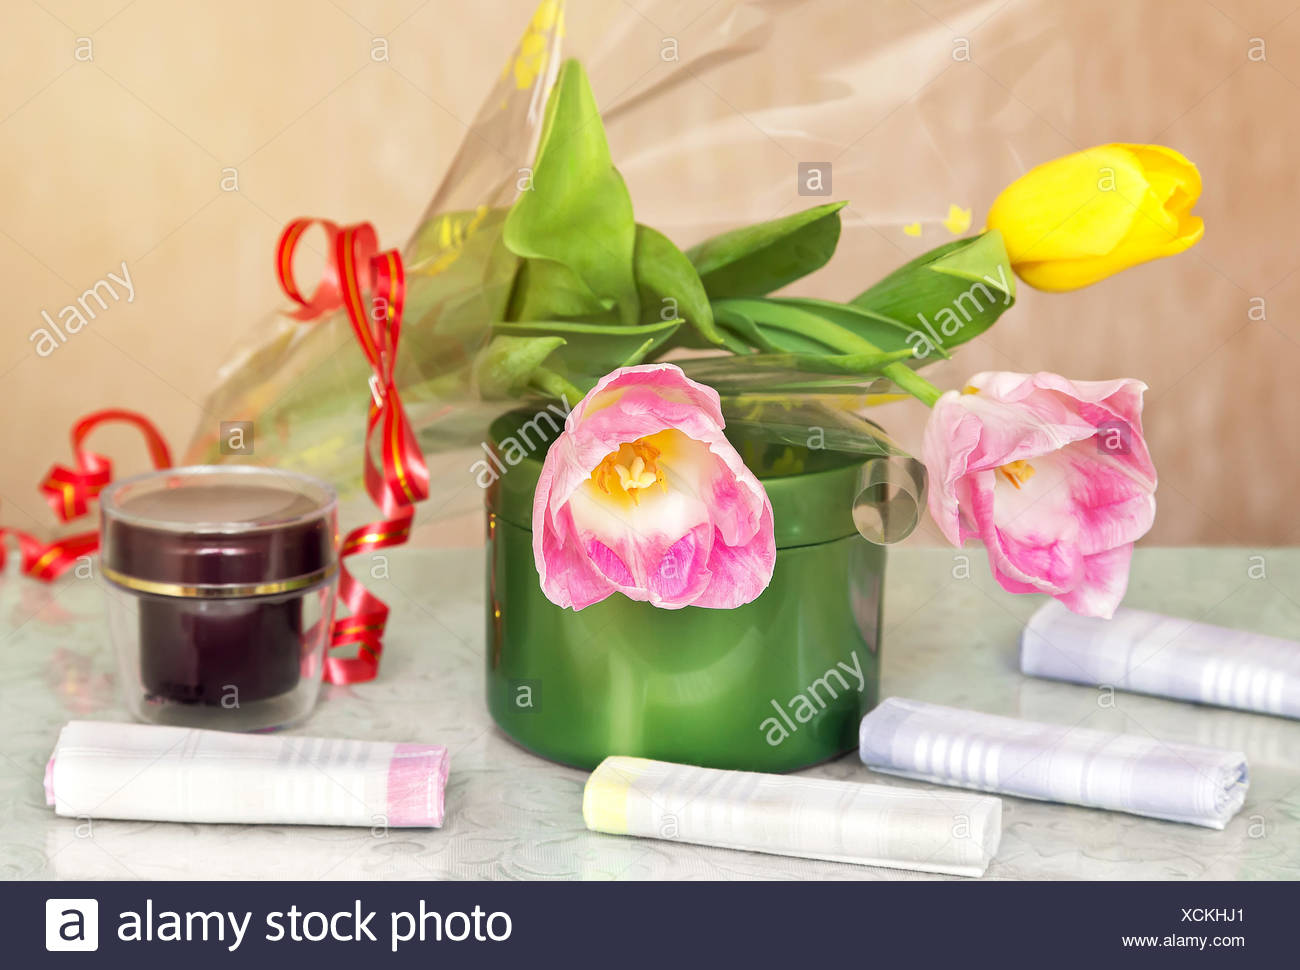 Cosmetics for body and hair and flowers. - Stock Image